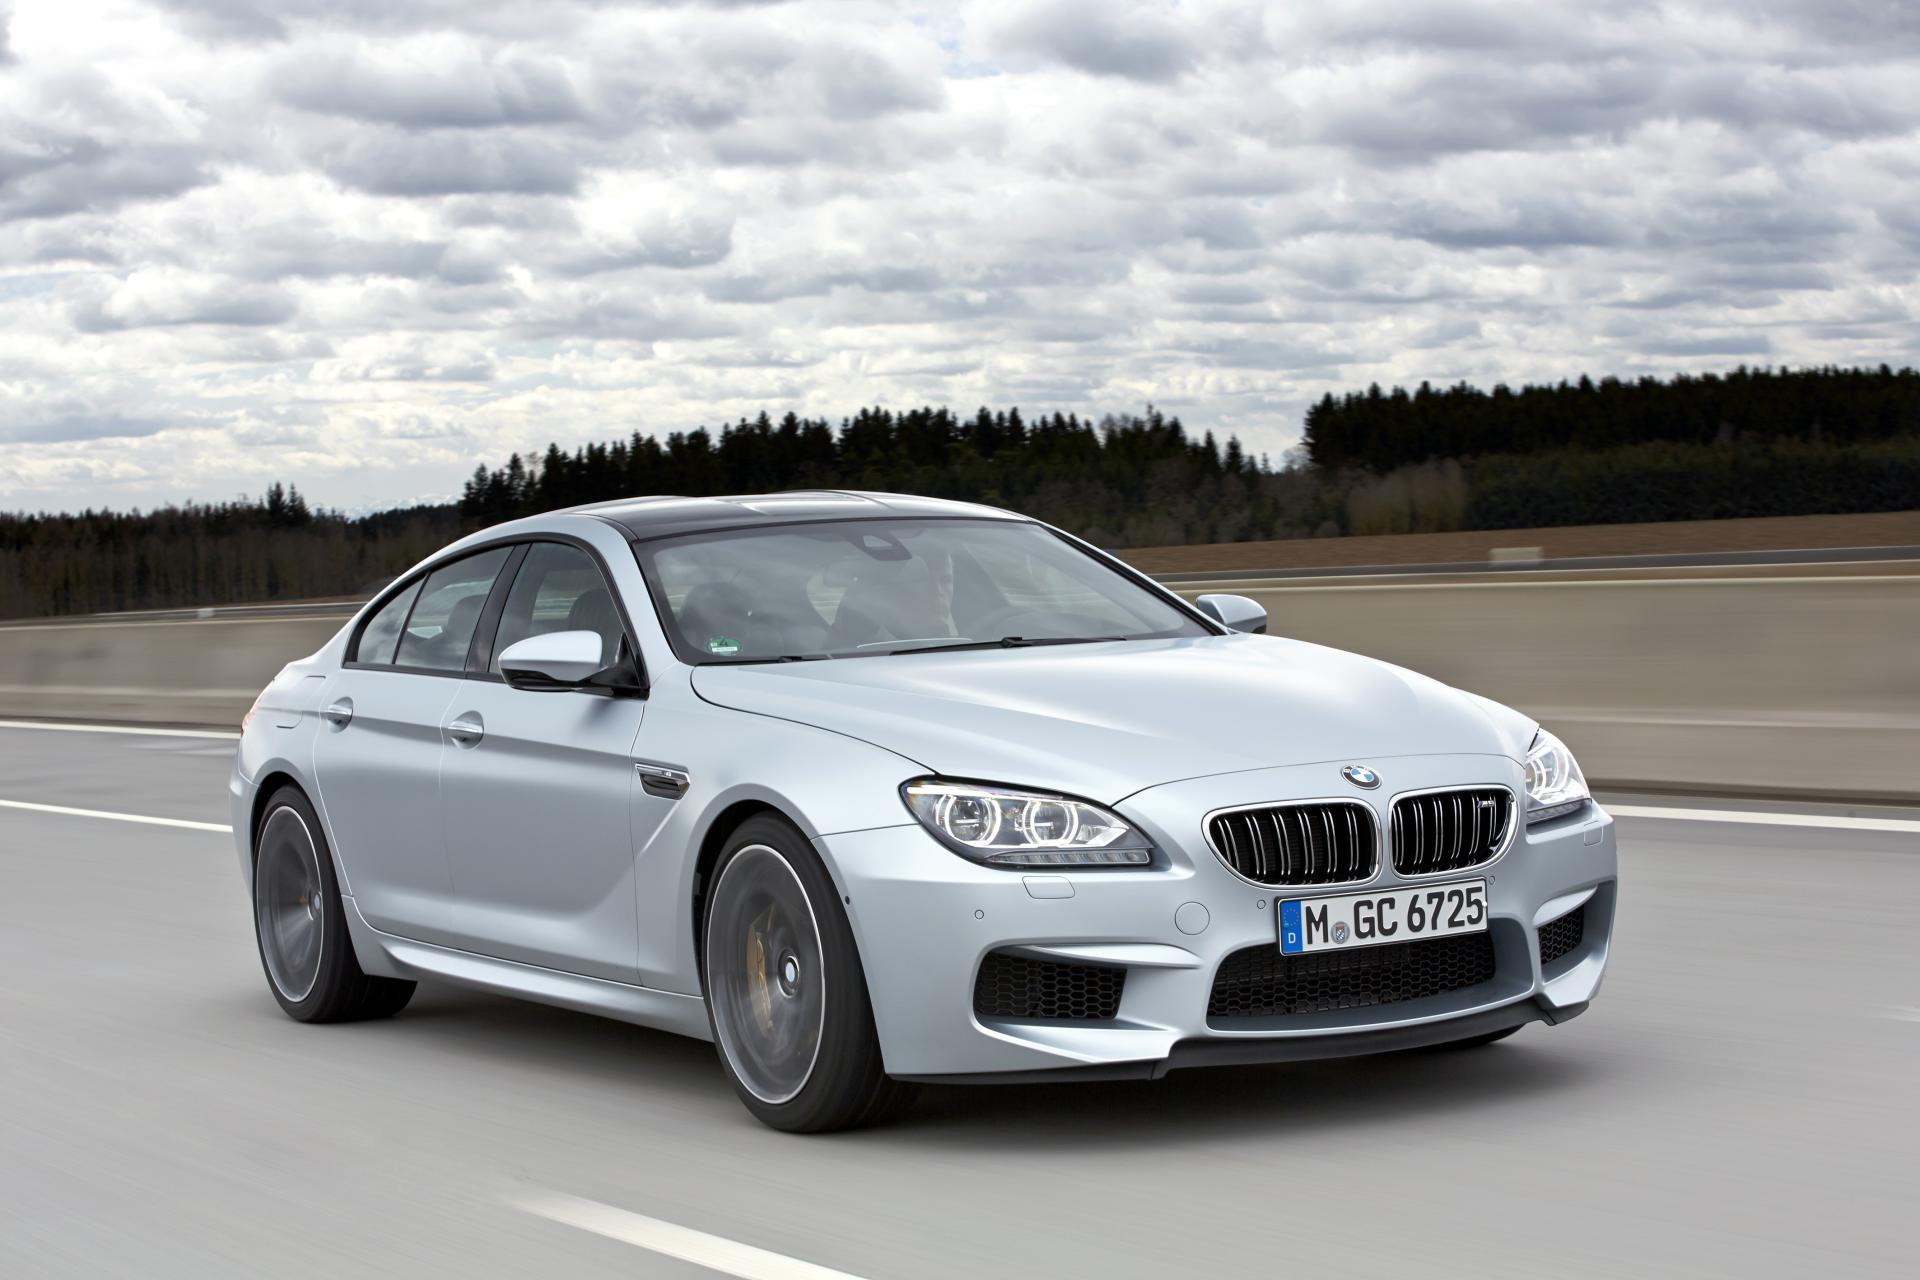 2014 bmw m6 gran coupe news and information. Black Bedroom Furniture Sets. Home Design Ideas